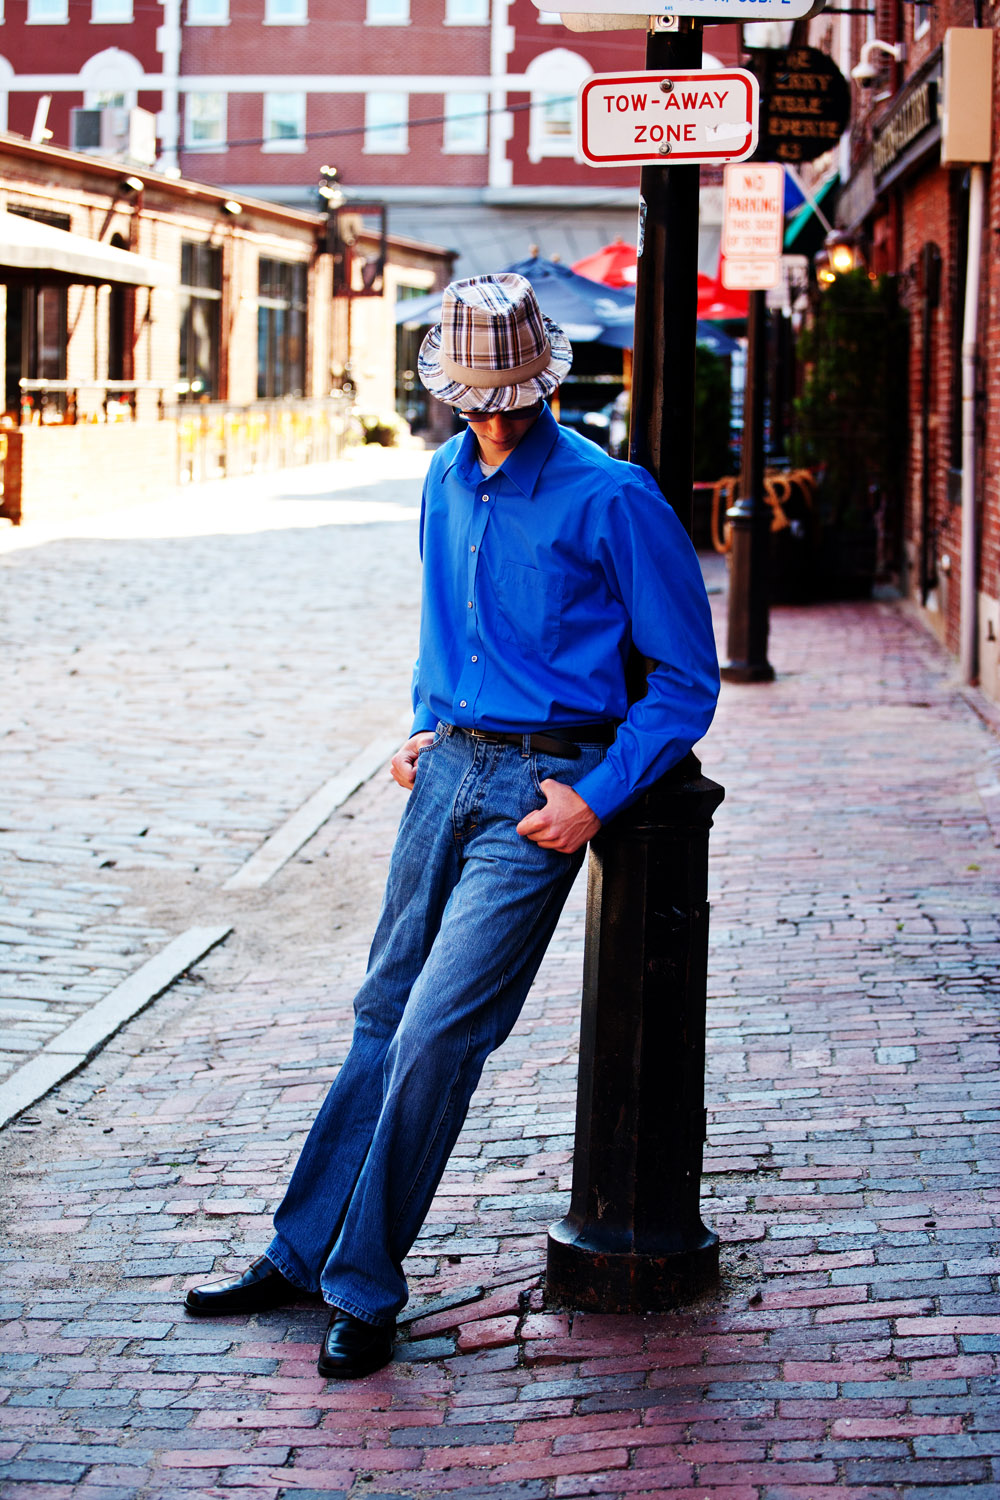 urban portrait of senior boy wearing plaid hat leaning on light post